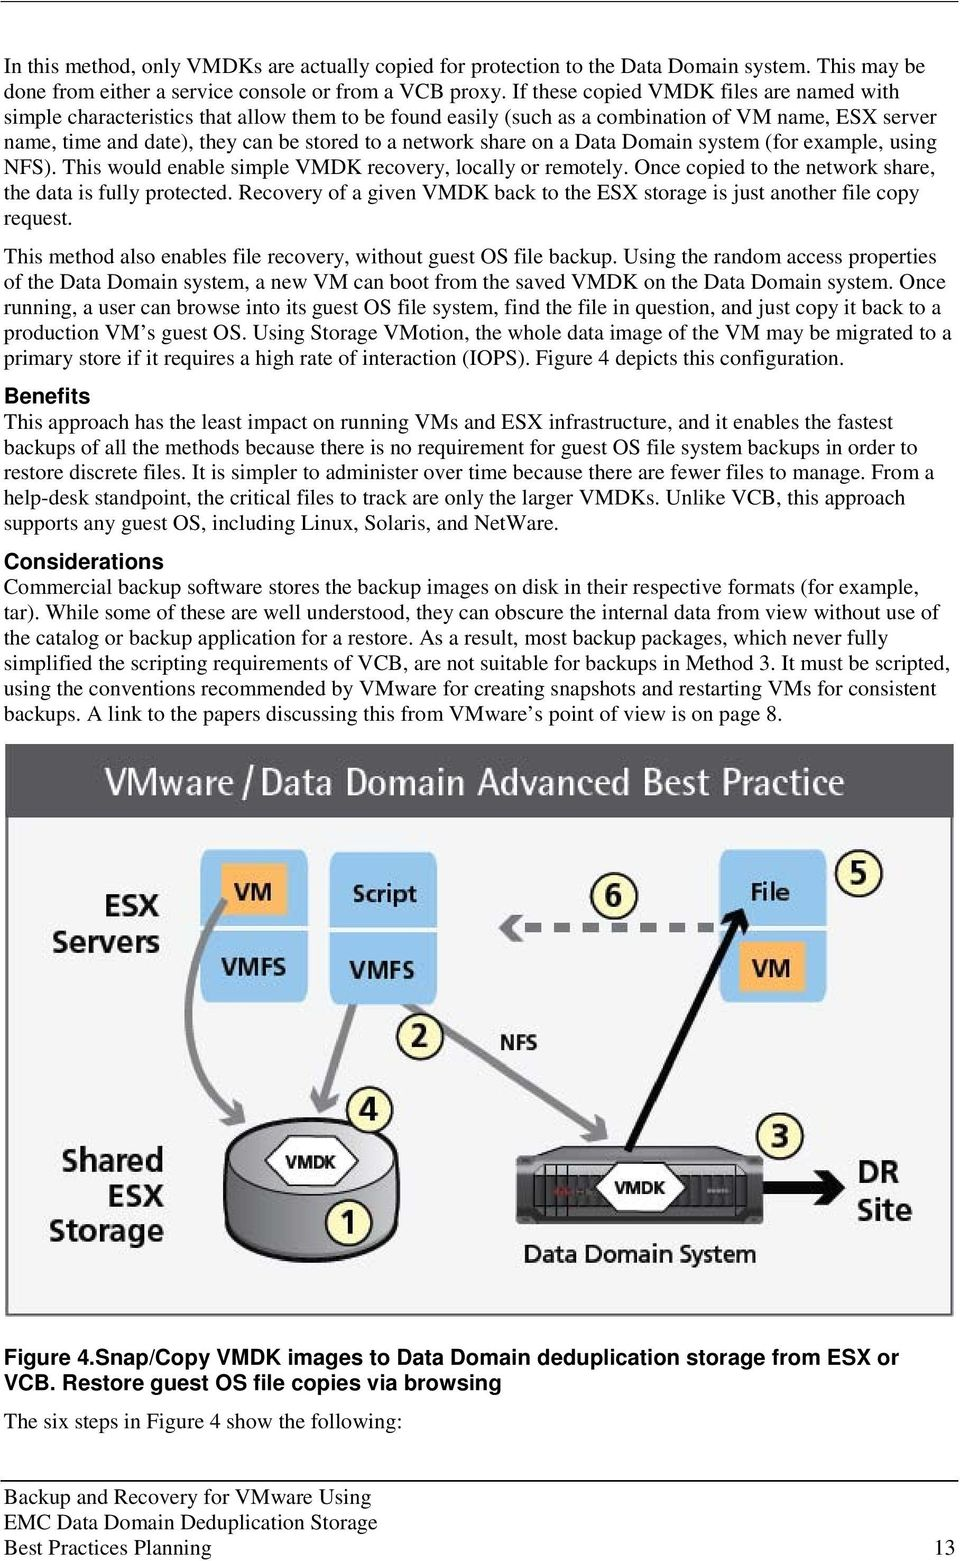 share on a Data Domain system (for example, using NFS). This would enable simple VMDK recovery, locally or remotely. Once copied to the network share, the data is fully protected.